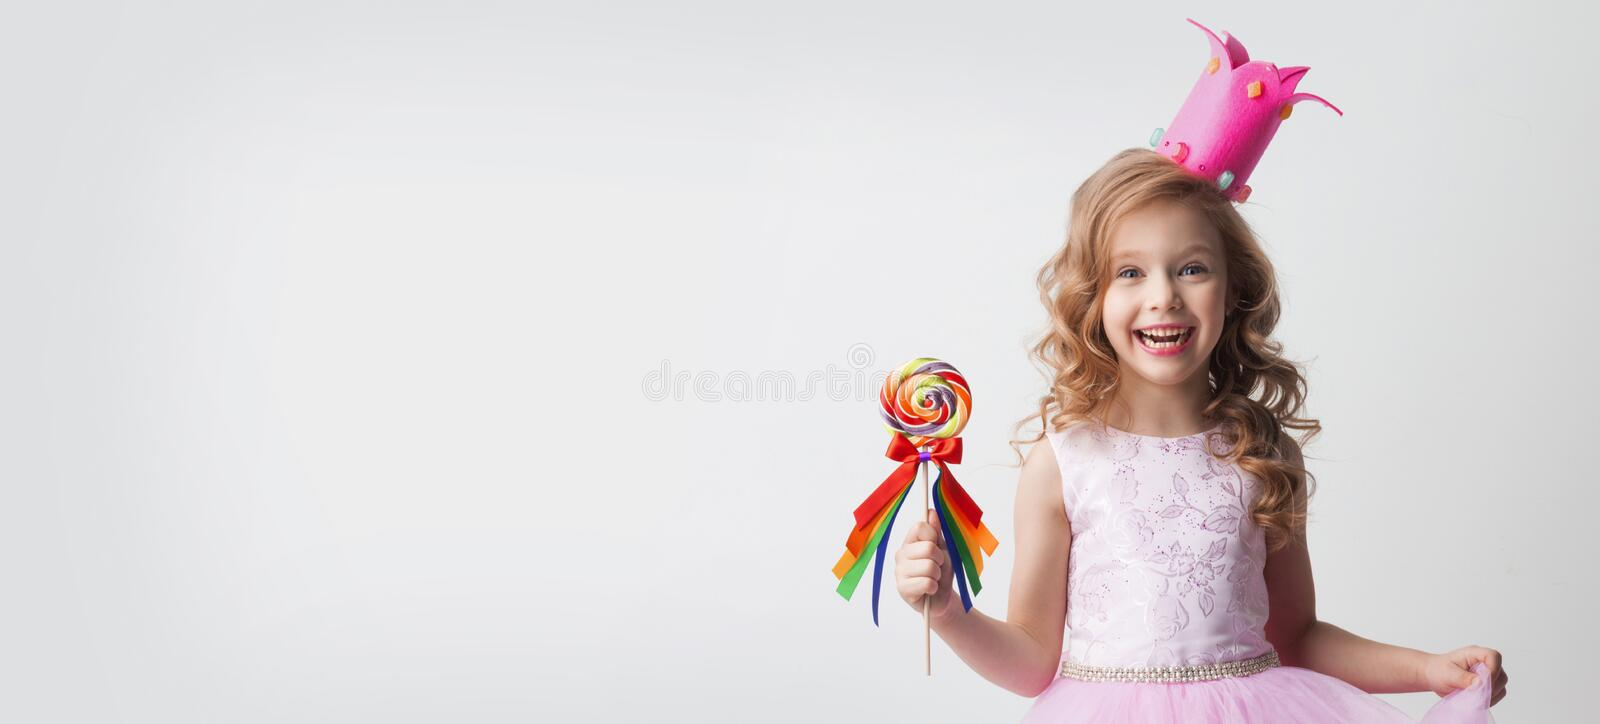 Candy princess with lollipop royalty free stock photography